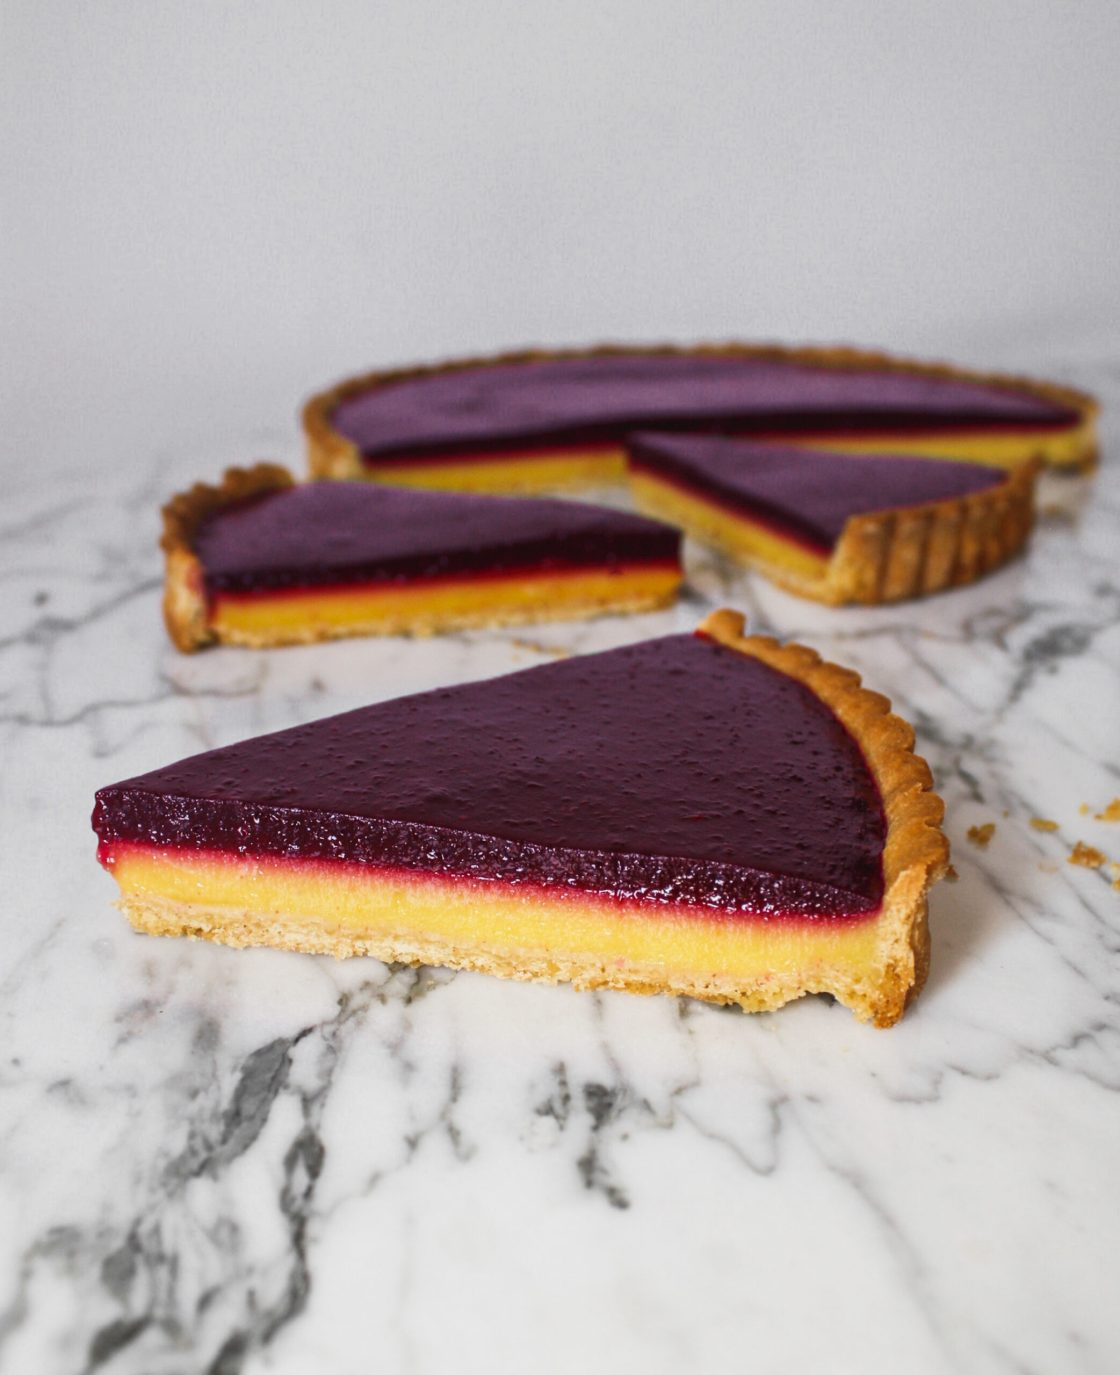 Tart slices, with yellow and purple layers, set on top of a marble surface.